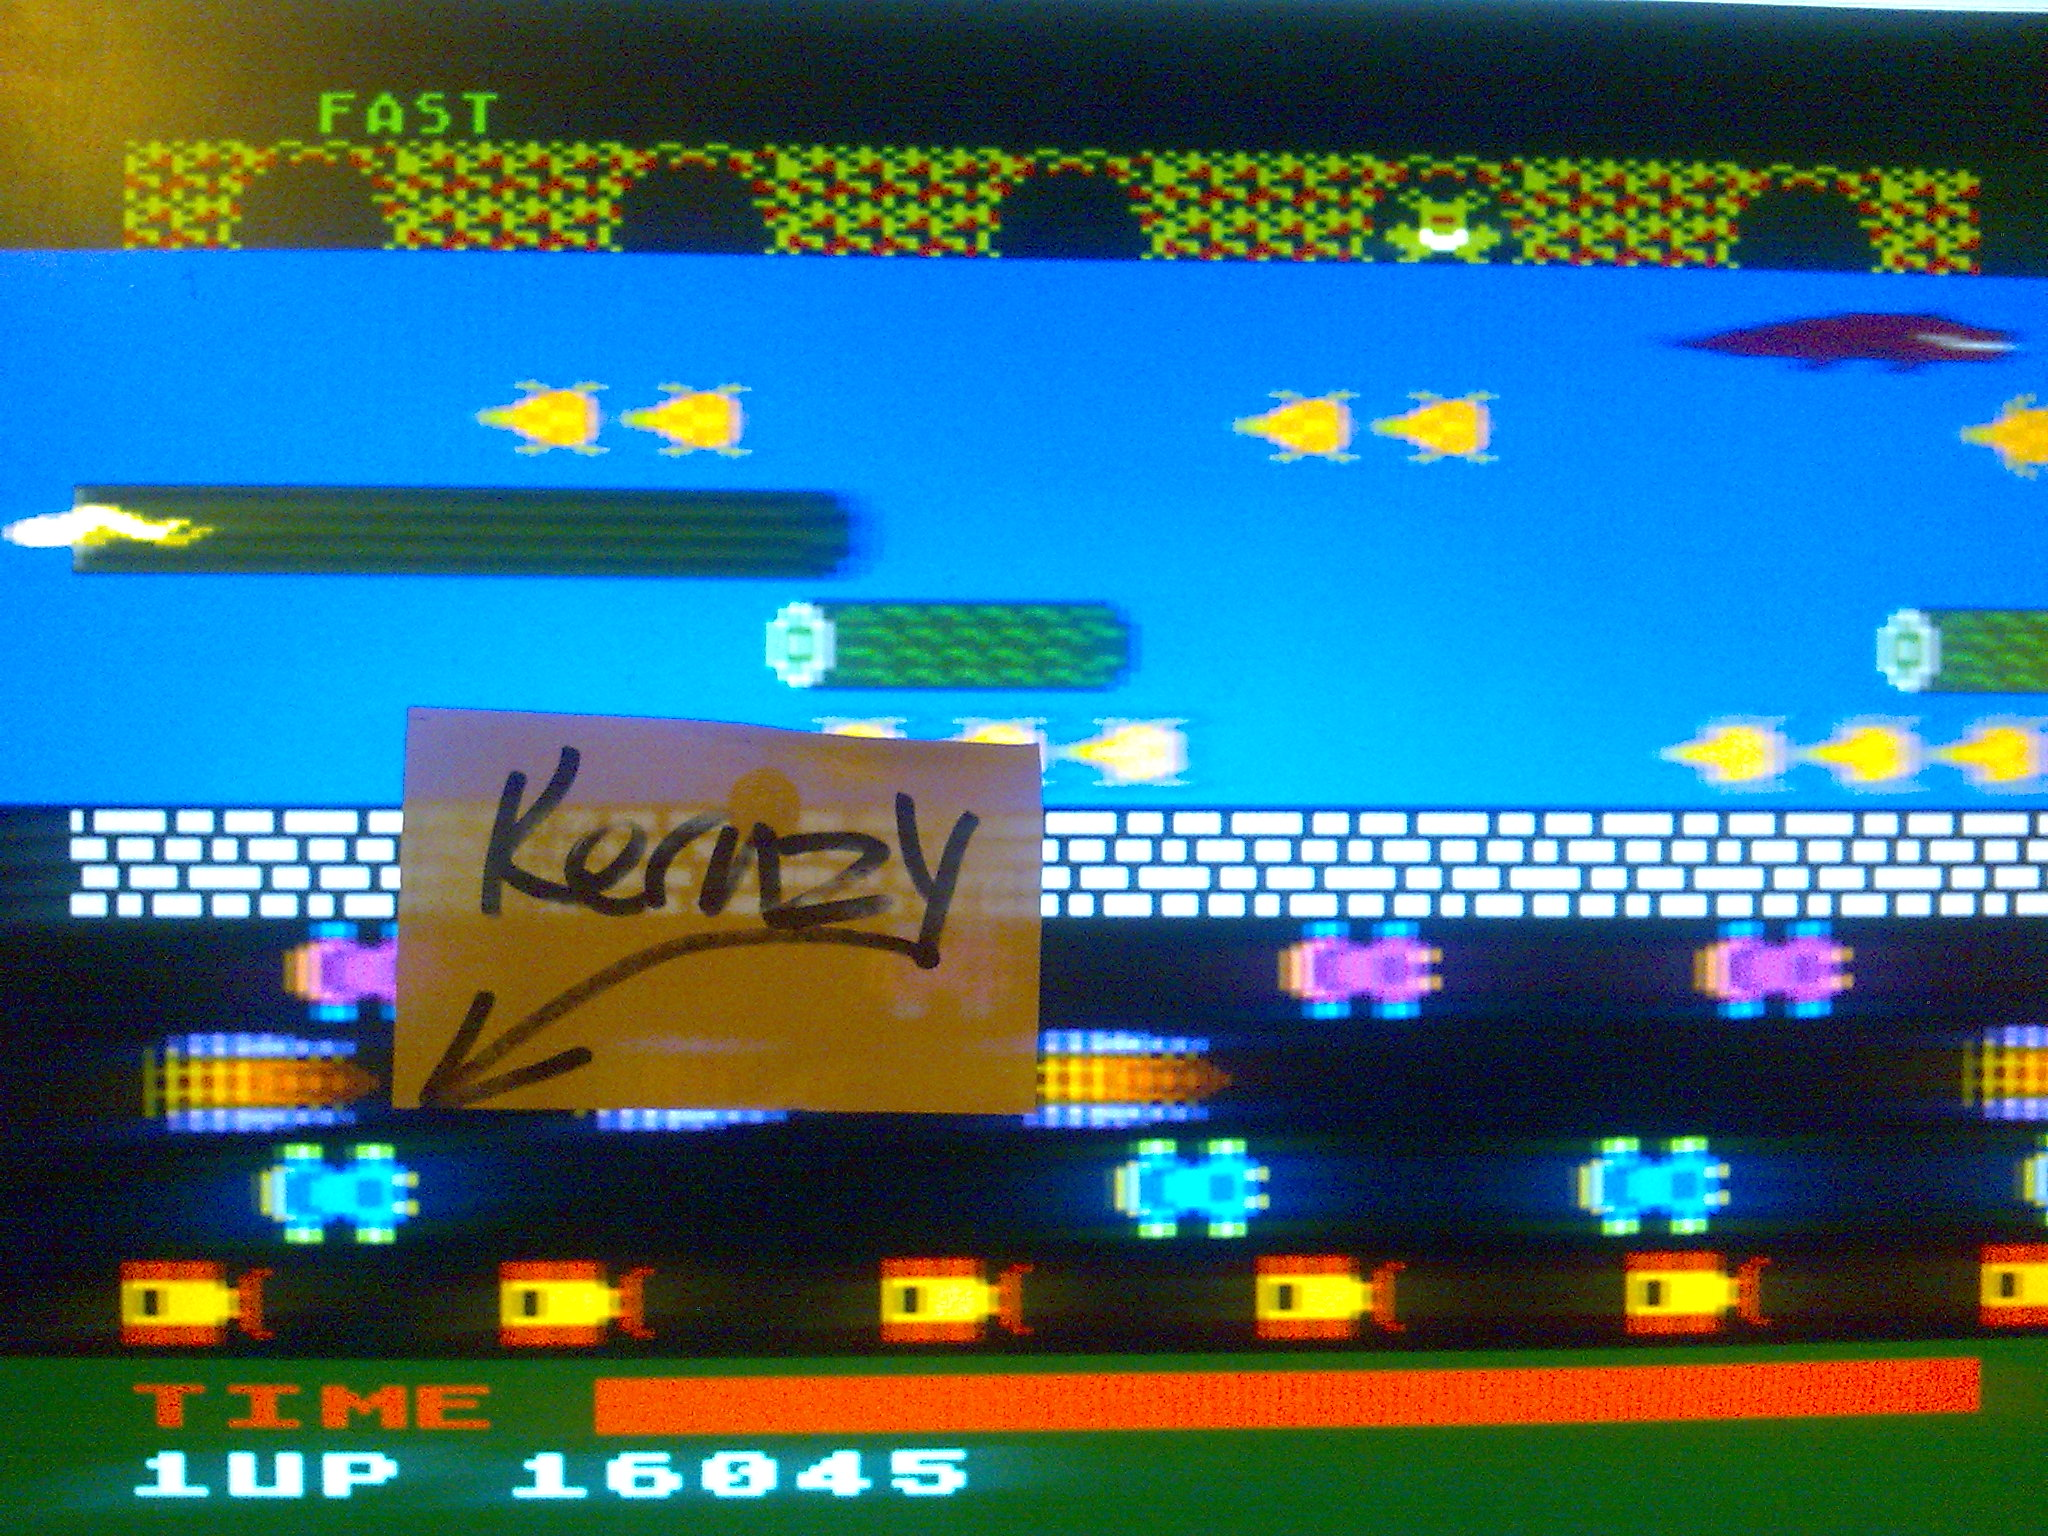 kernzy: Frogger: Fast [Parker Brothers] (Atari 400/800/XL/XE Emulated) 16,045 points on 2014-10-17 21:04:01